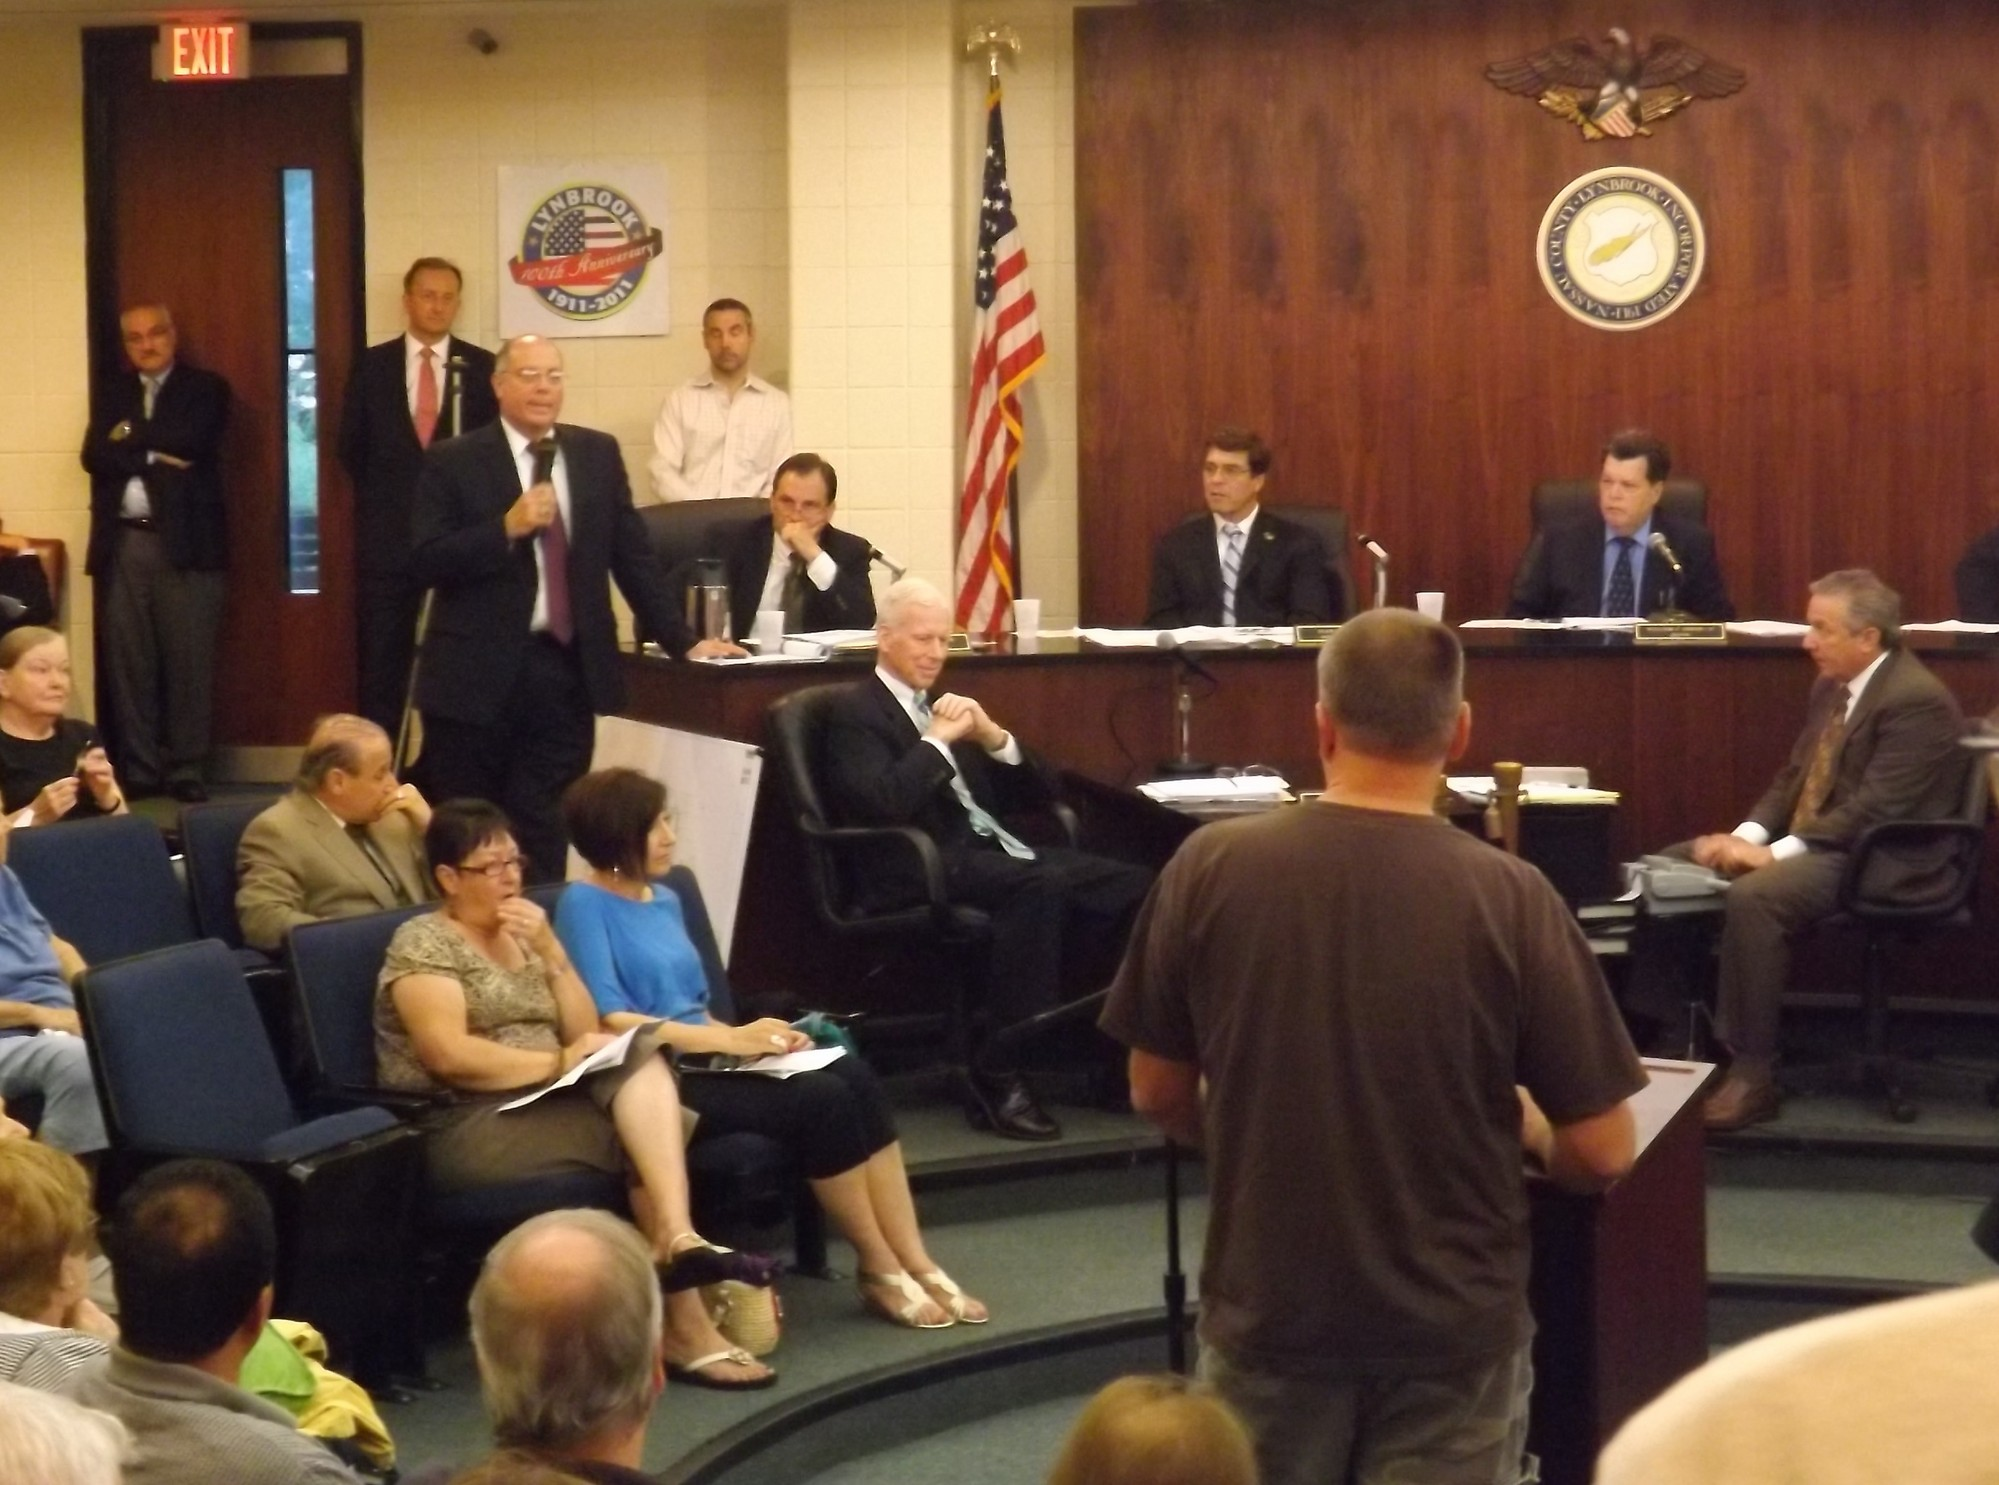 More than 30 residents asked questions and made comments during a July 2 public hearing at Lynbrook Village Hall regarding a Walgreens being built at the corner of Hempstead and Lakeview avenues.